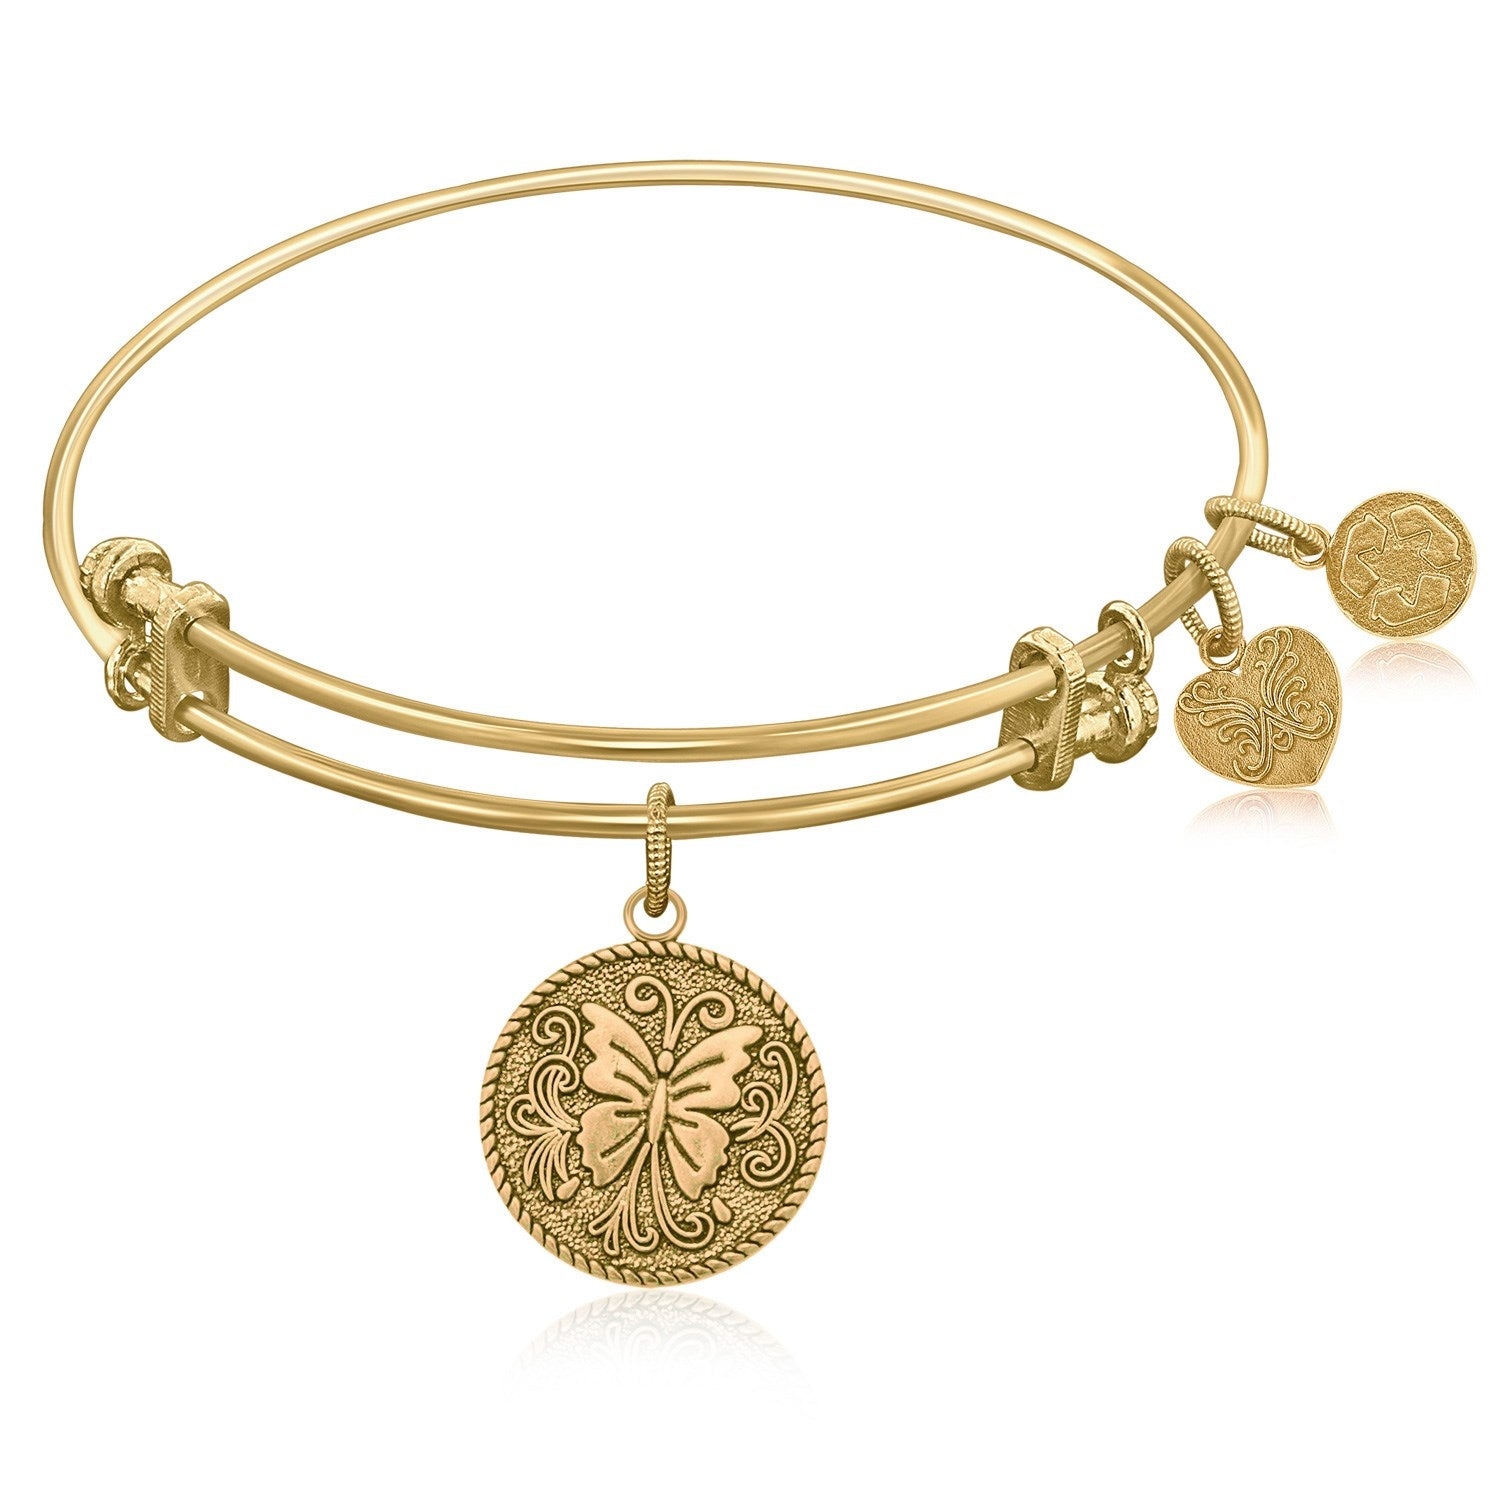 Luxury London Style Original Expandable Bangle in Yellow Tone Brass with Butterfly Transformation Symbol